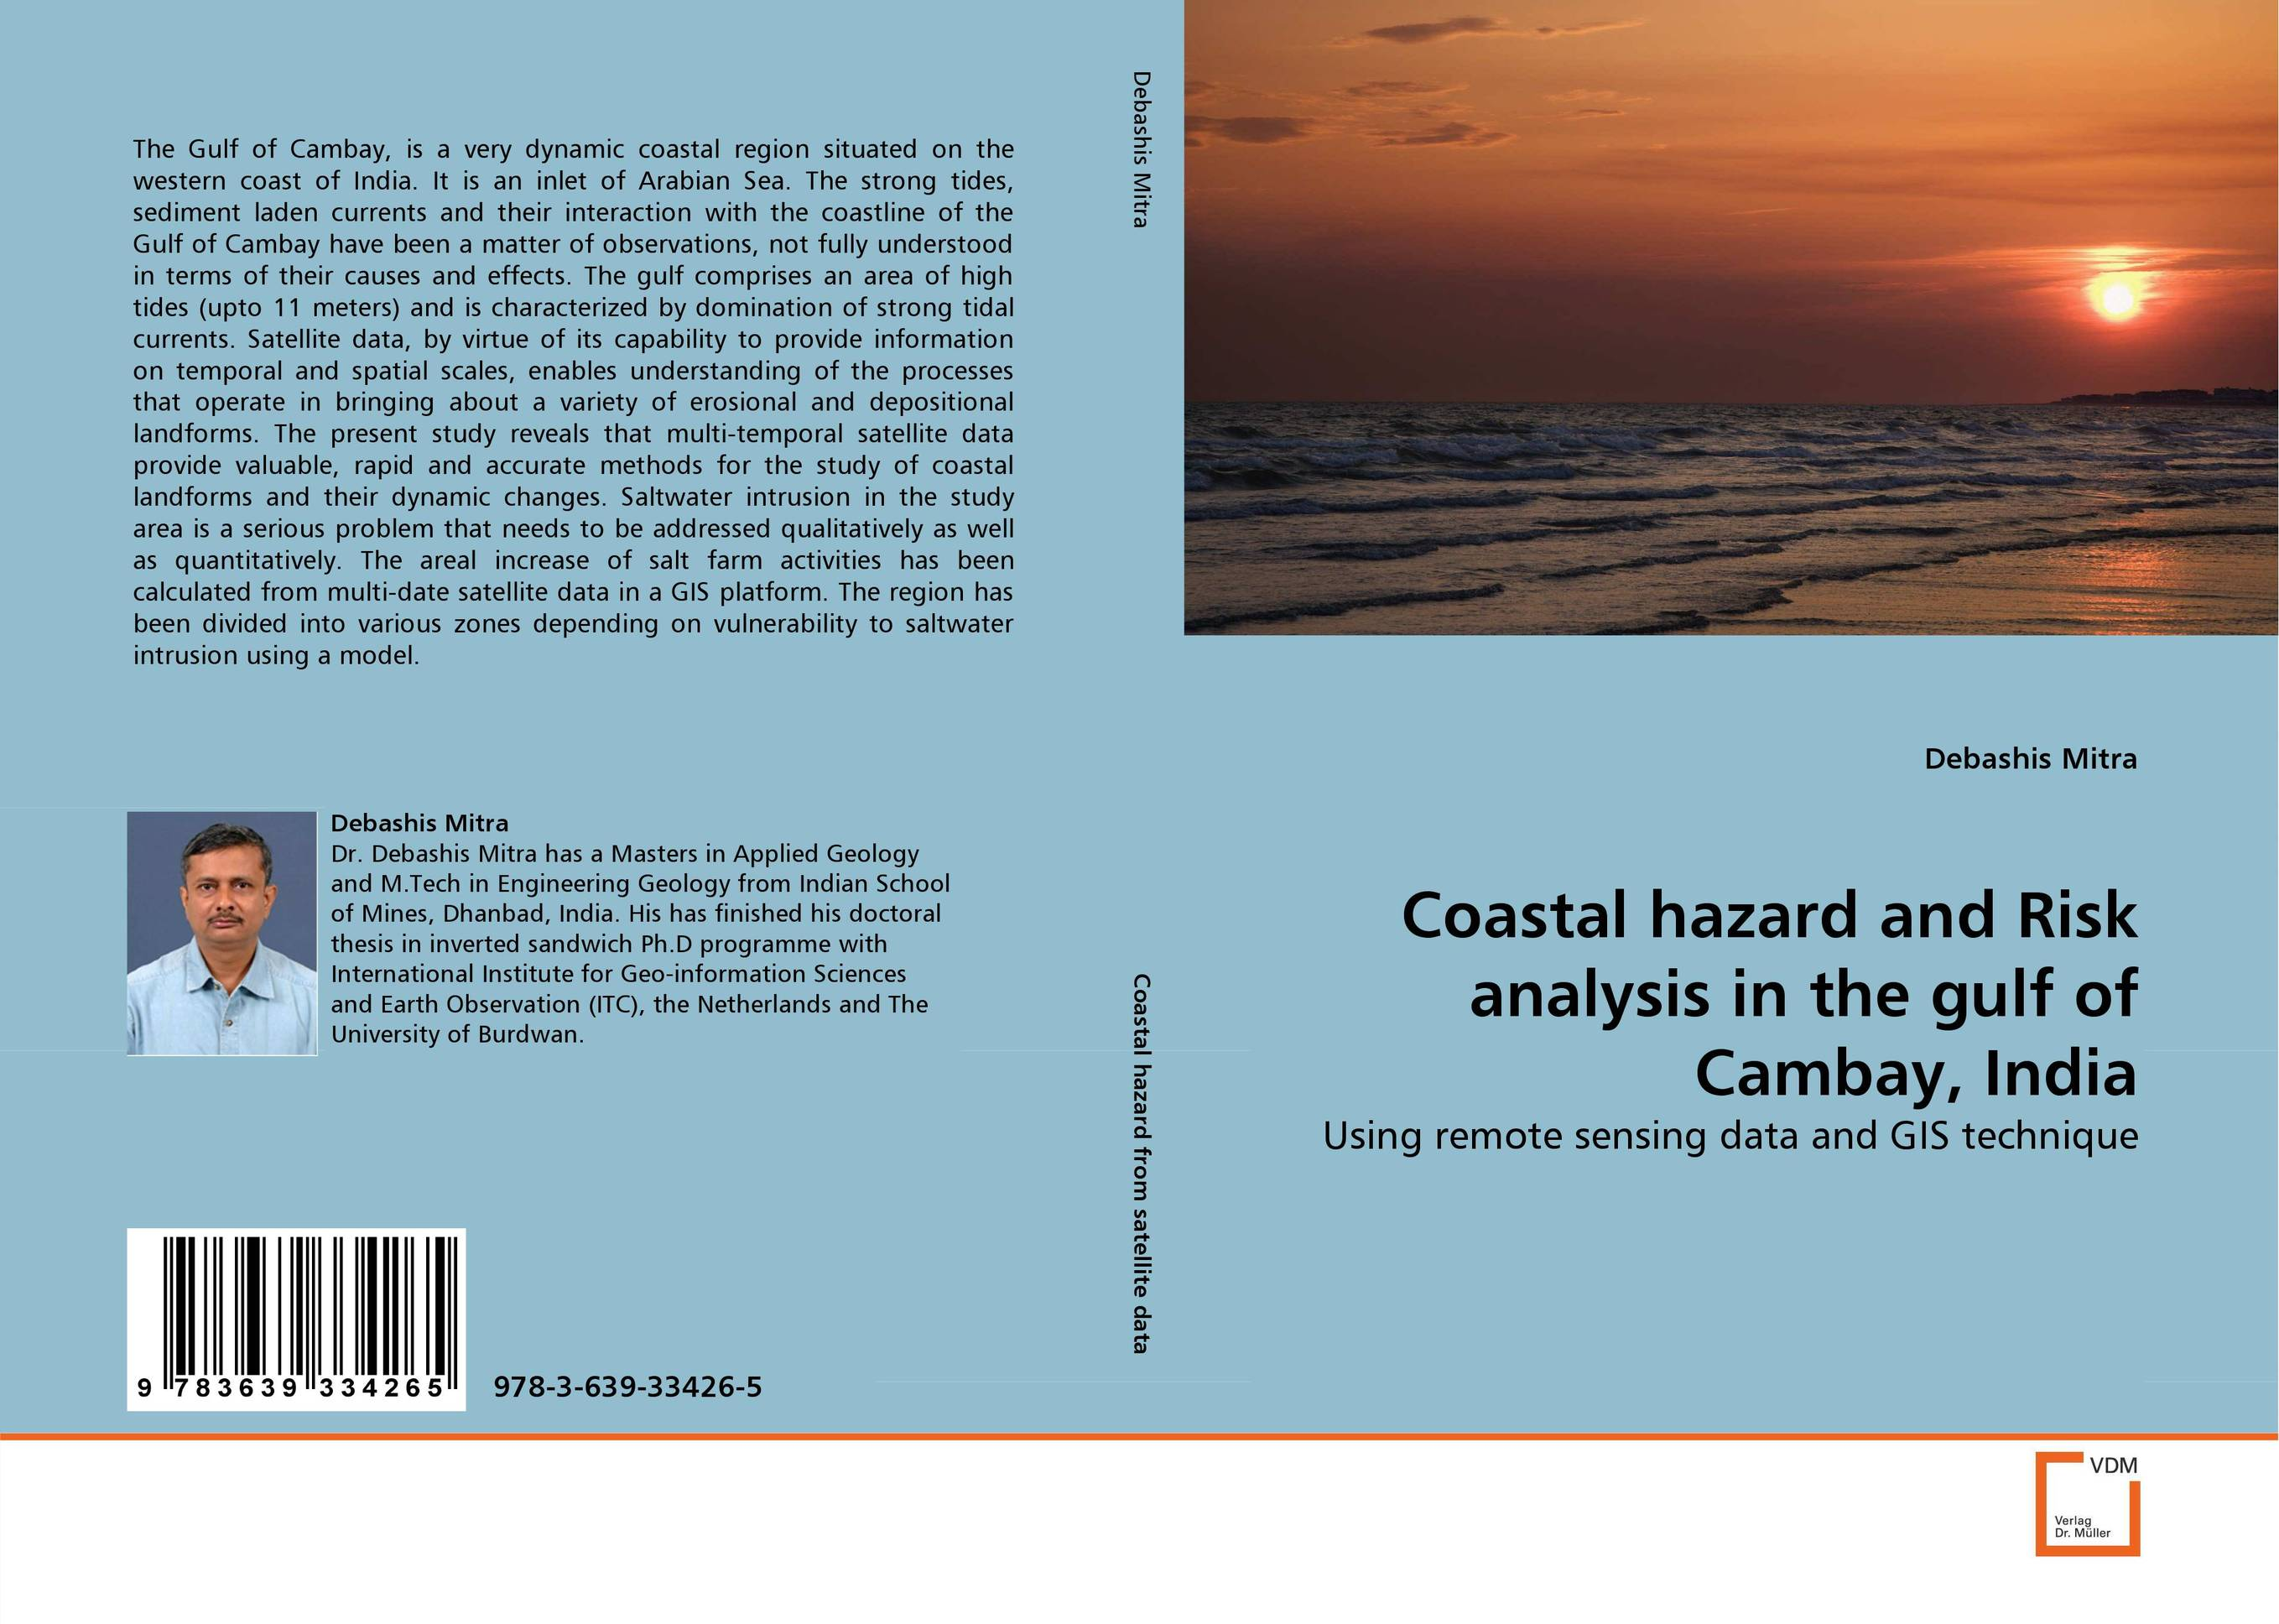 Coastal hazard and Risk analysis in the gulf of Cambay, India promoting social change in the arab gulf